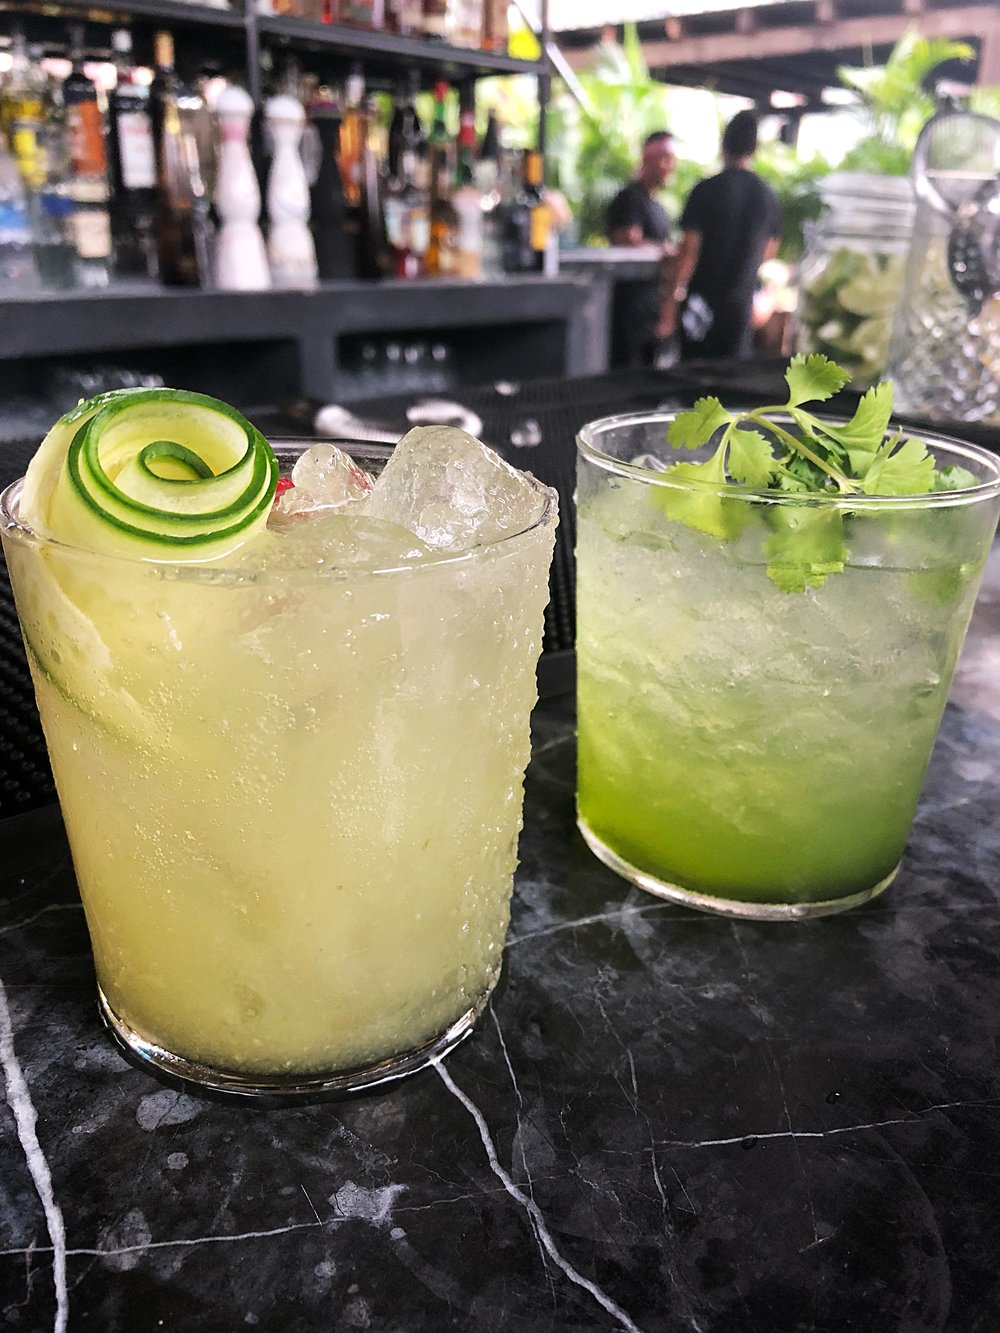 Drinks at Gitano NYC, the pop-up in Soho (expensive and overrated)